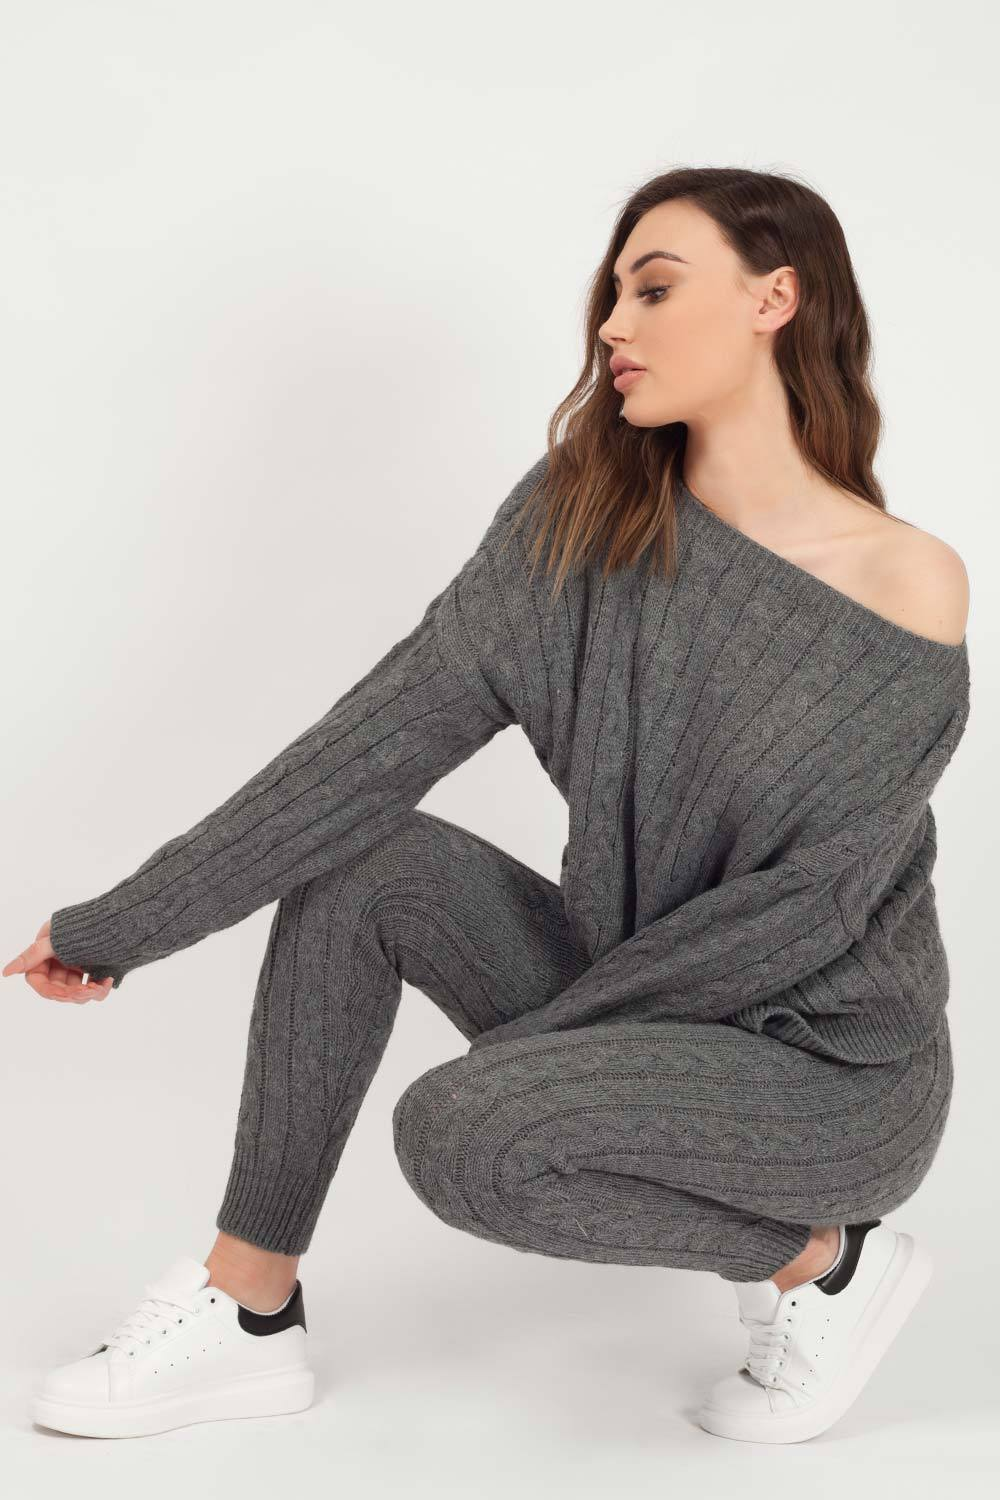 women's loungewear sets